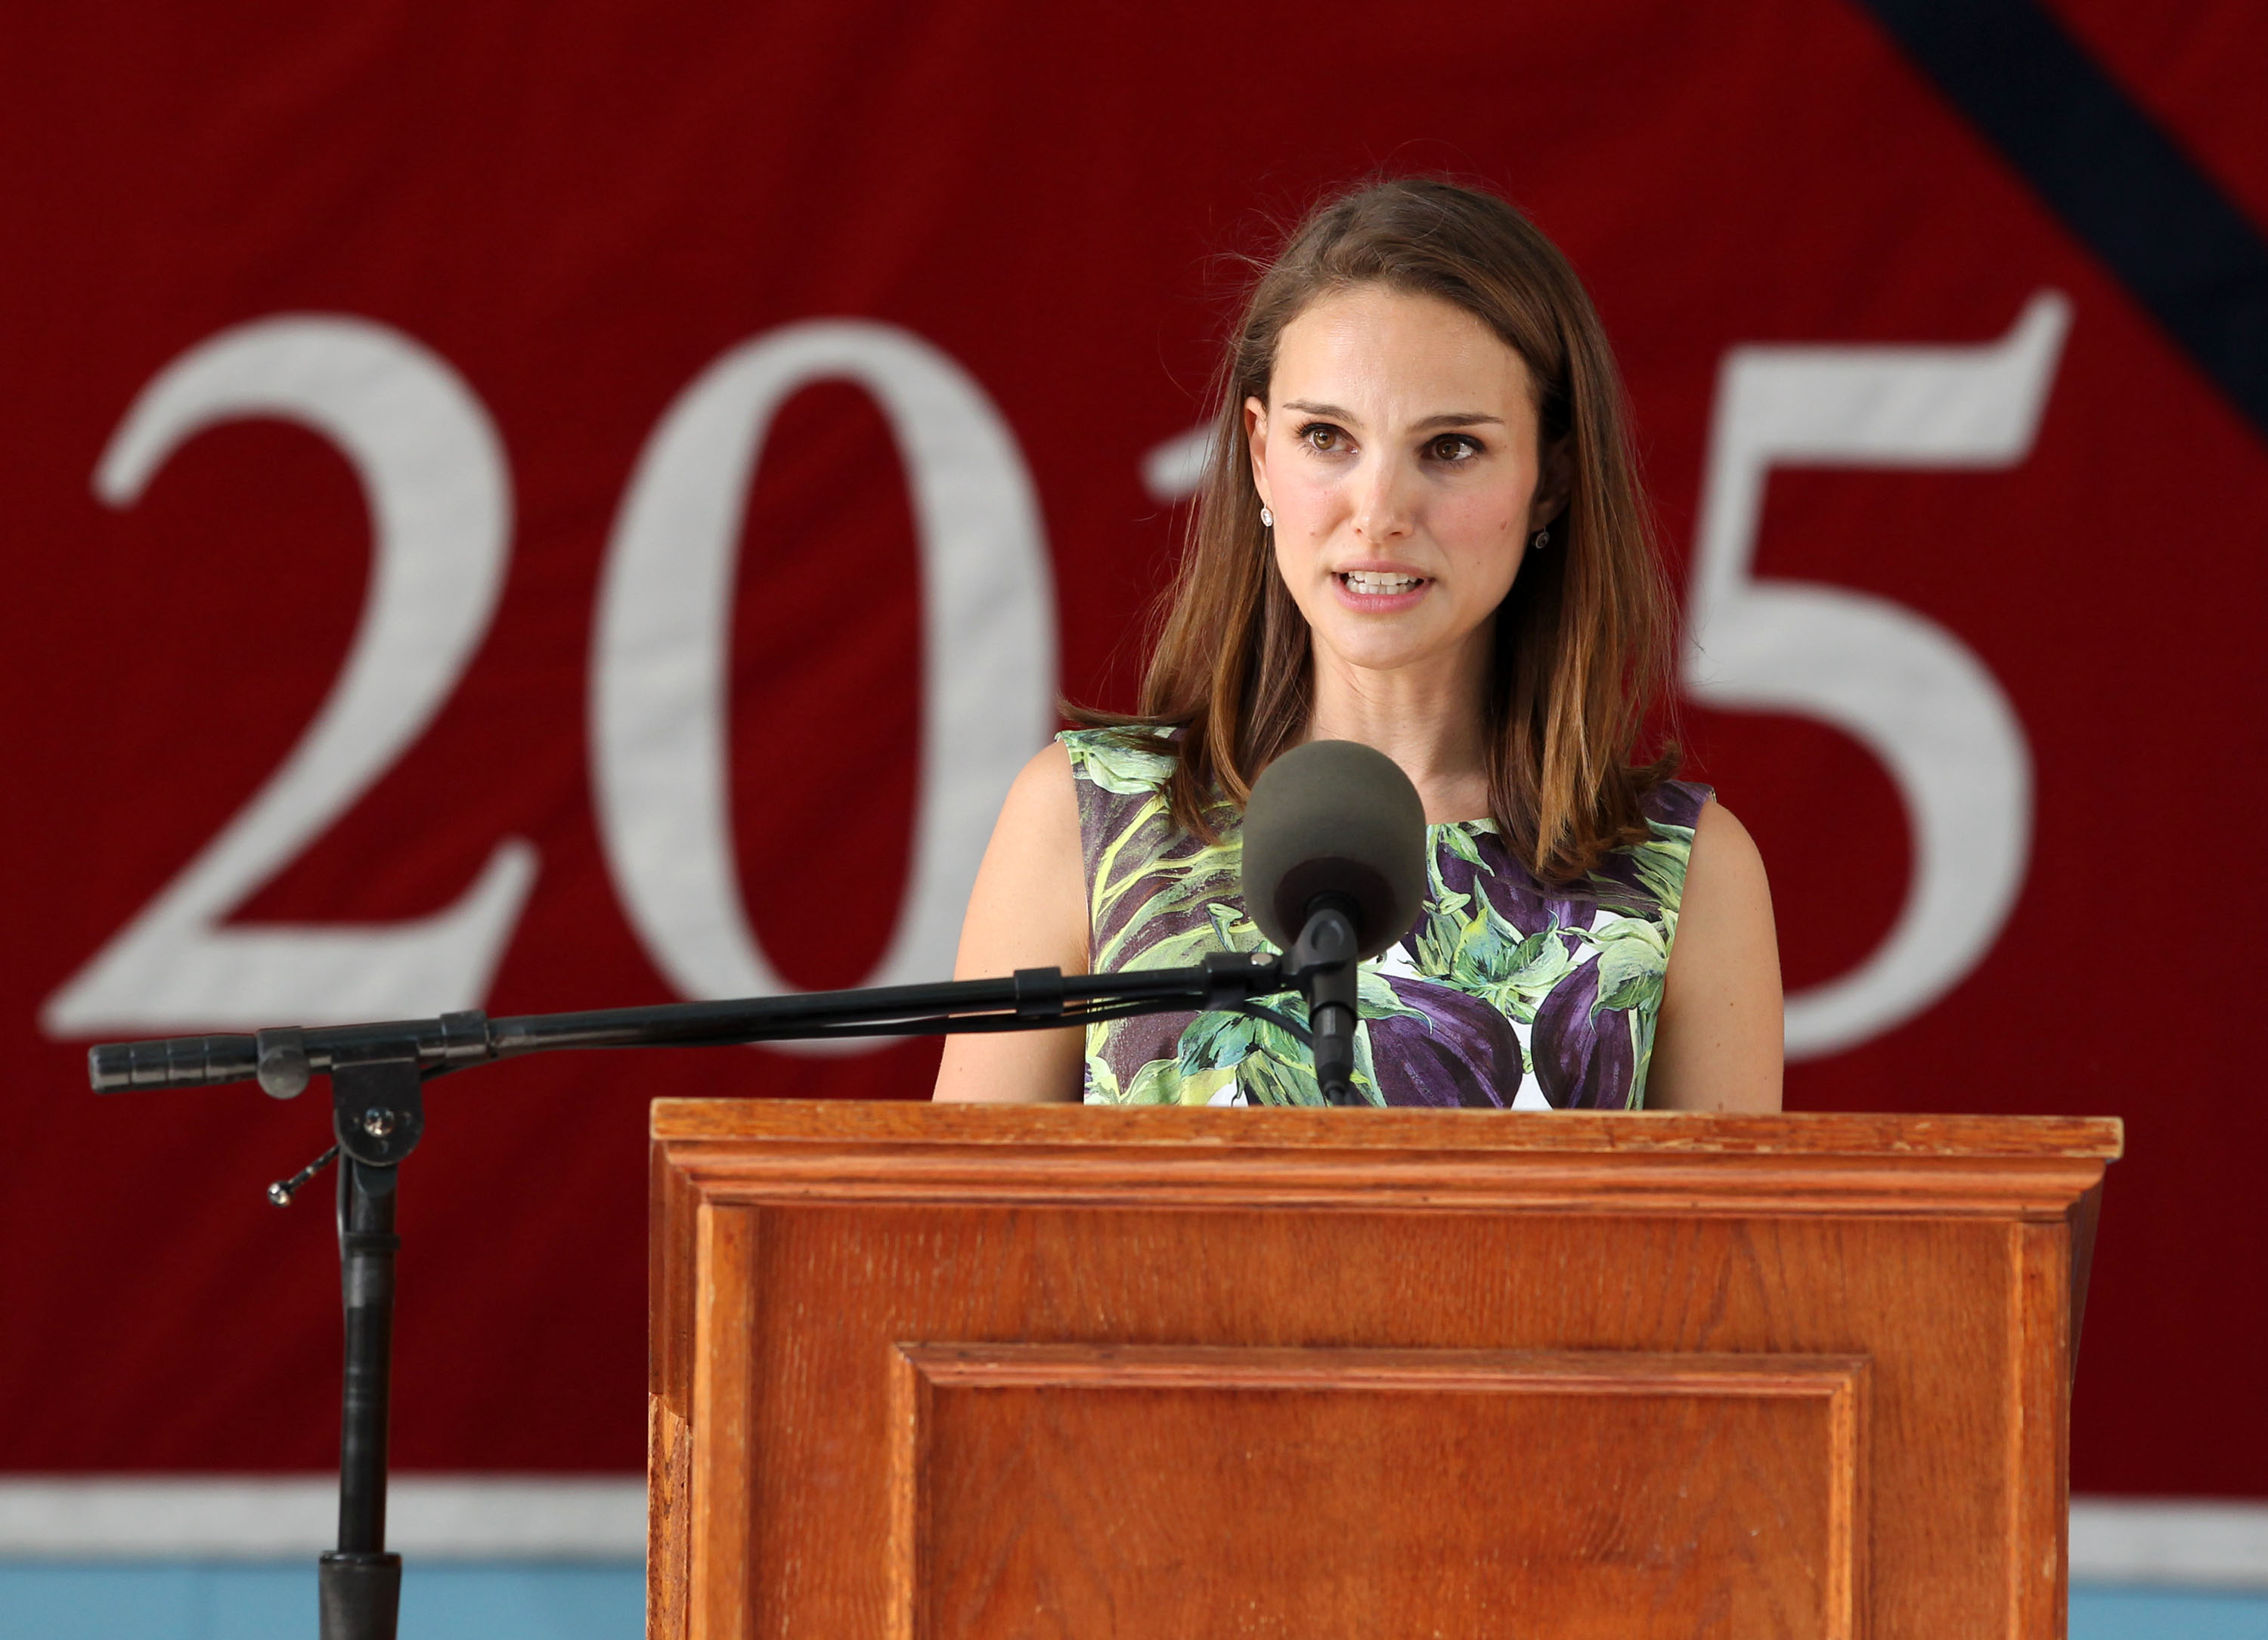 Natalie Portman Tells Harvard Grads About 'Dark Moments' and Fear of Being…